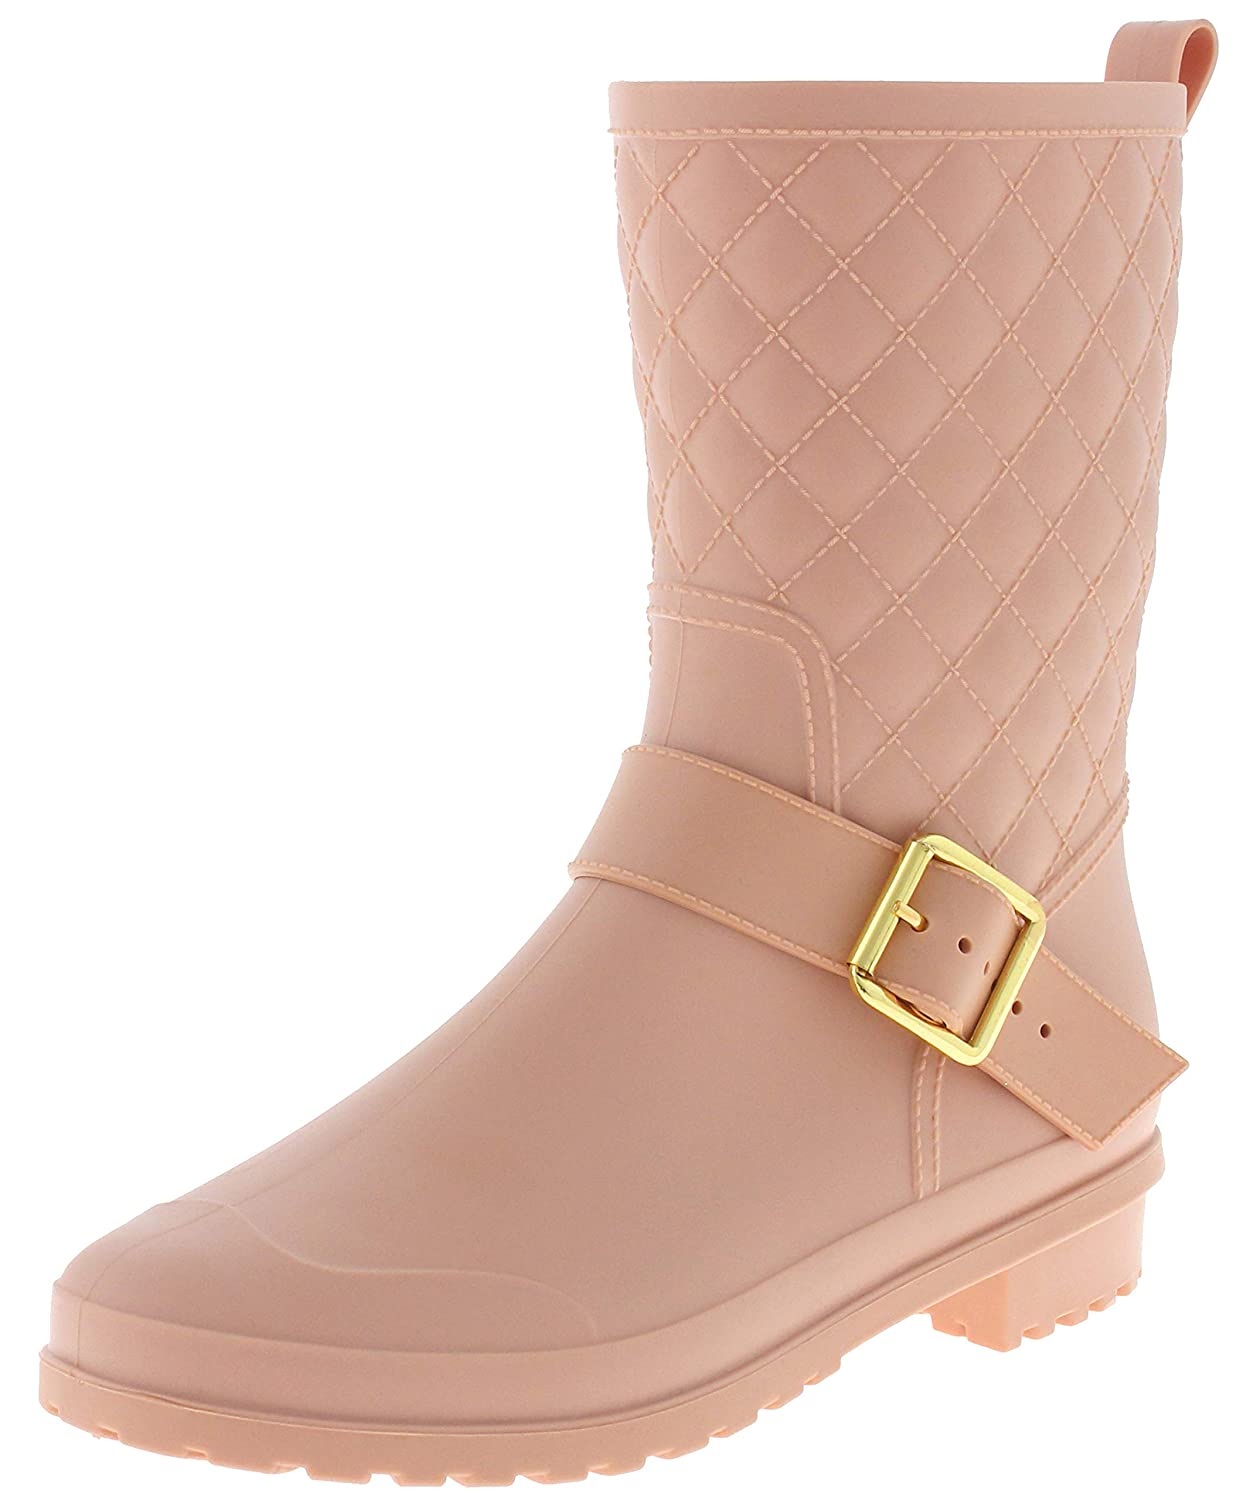 Capelli New York Ladies Two Tone Mid Calf Rubber Rain Boot RBT-4093